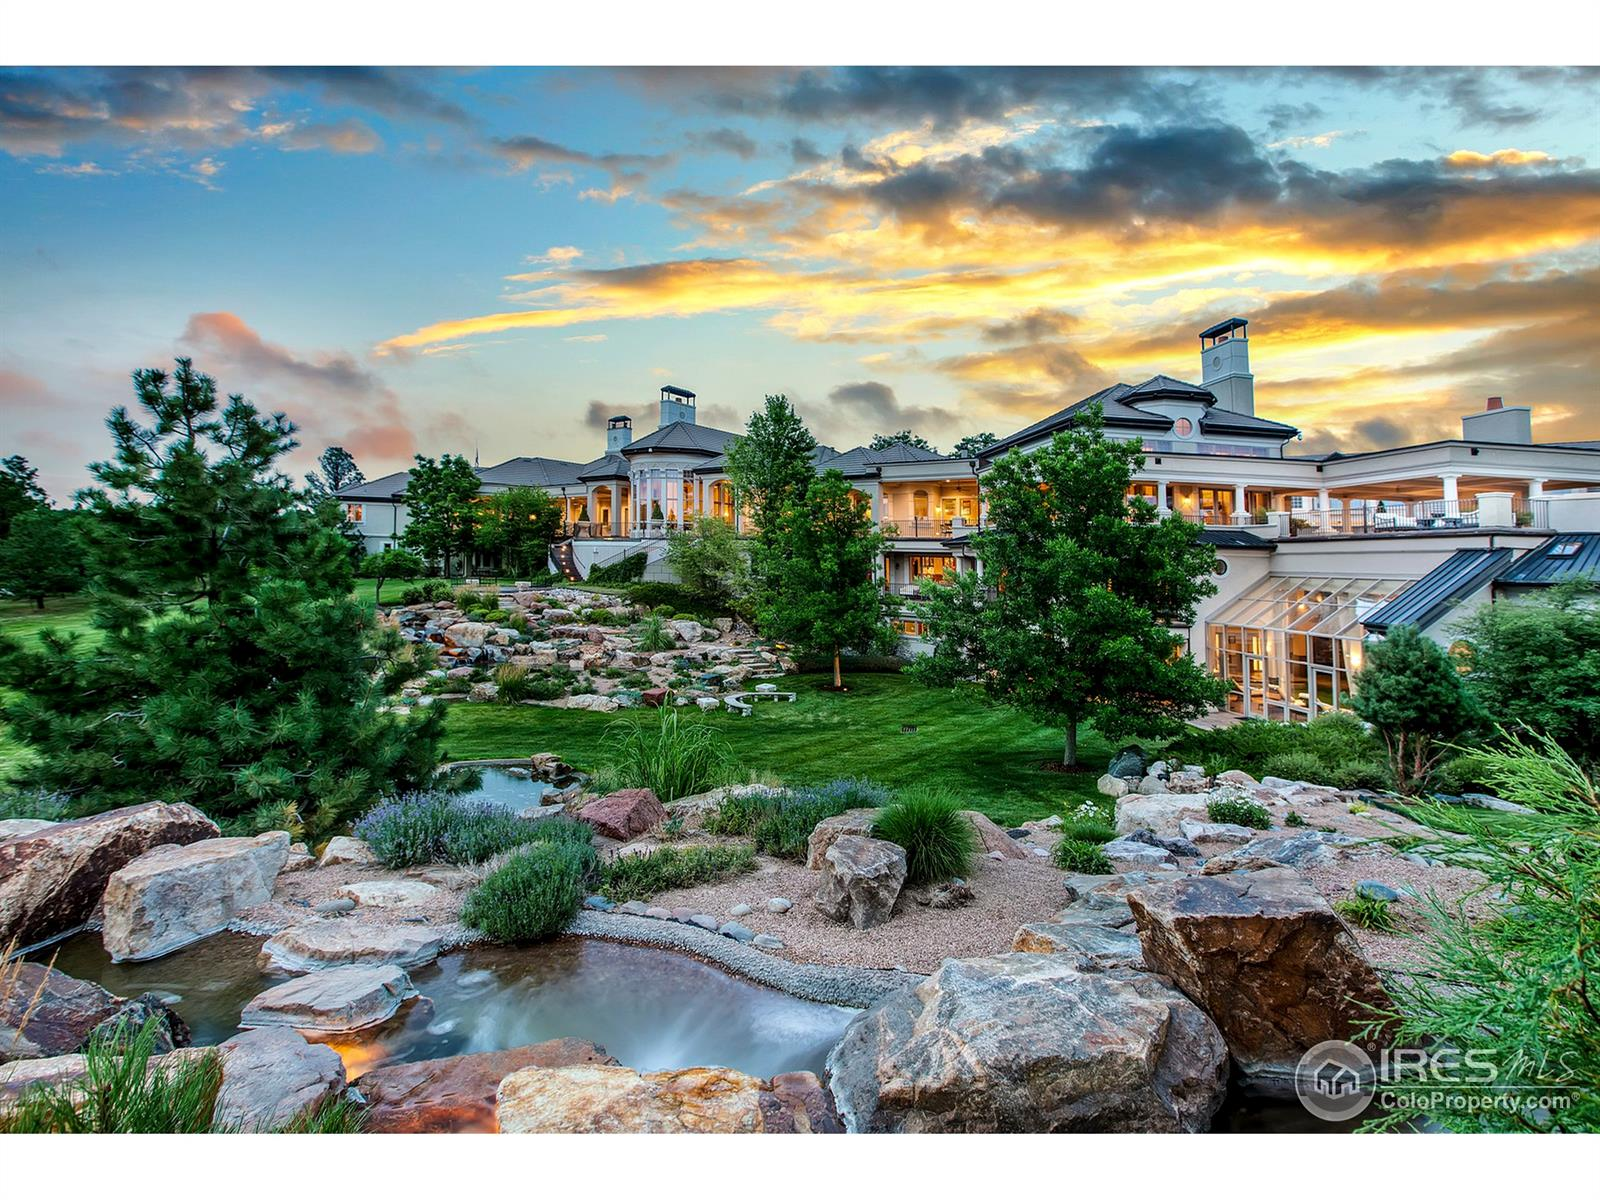 Amazing residence has approximately 45,212 sf with a floor plan suited for entertaining on a grand scale. Features - impeccable furnishings, exquisite finishes, entertainment wing, wine cellar, garage parking for 29 cars. Includes furnishings, art collection, wine. See Listing Agent for list of Exclusions. Entertainment wing -heated pool, Jacuzzi, steam, sauna, his/her locker rooms, theater, dance floor/stage, bowling, billiard table, ping pong, game room, exercise facilities. Horses allowed. Security systems, water purification system, and elevators. Main level of home is ground level, two apartments are on second level above garage.  Lower level includes all bedrooms above grade. Total 11 BR in main residence and 2 in Caretaker's.  Including the Caretaker's Residence (2BR and 3BA), bathrooms consist of 9-Full,  11-3/4, and 8-half.  Total also includes spa area His/Her locker rooms equal to 4-3/4 baths, plus 2 additional showers. HOA dues are $950/year per 35-acre parcel.